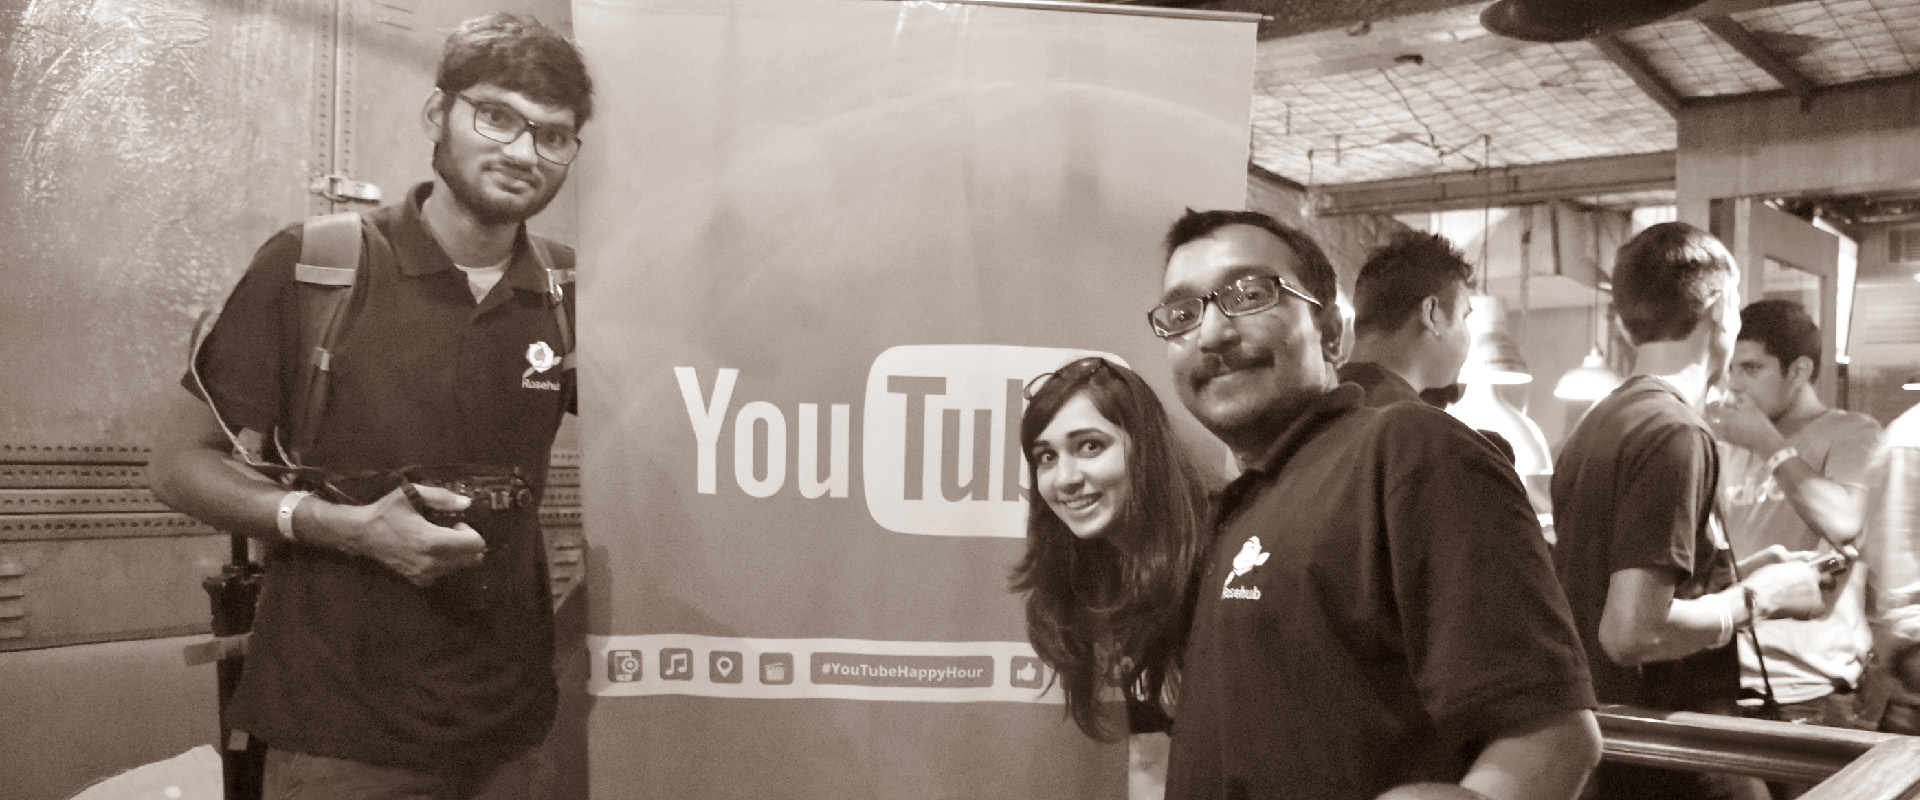 Rosehub at Youtube Happy Hour